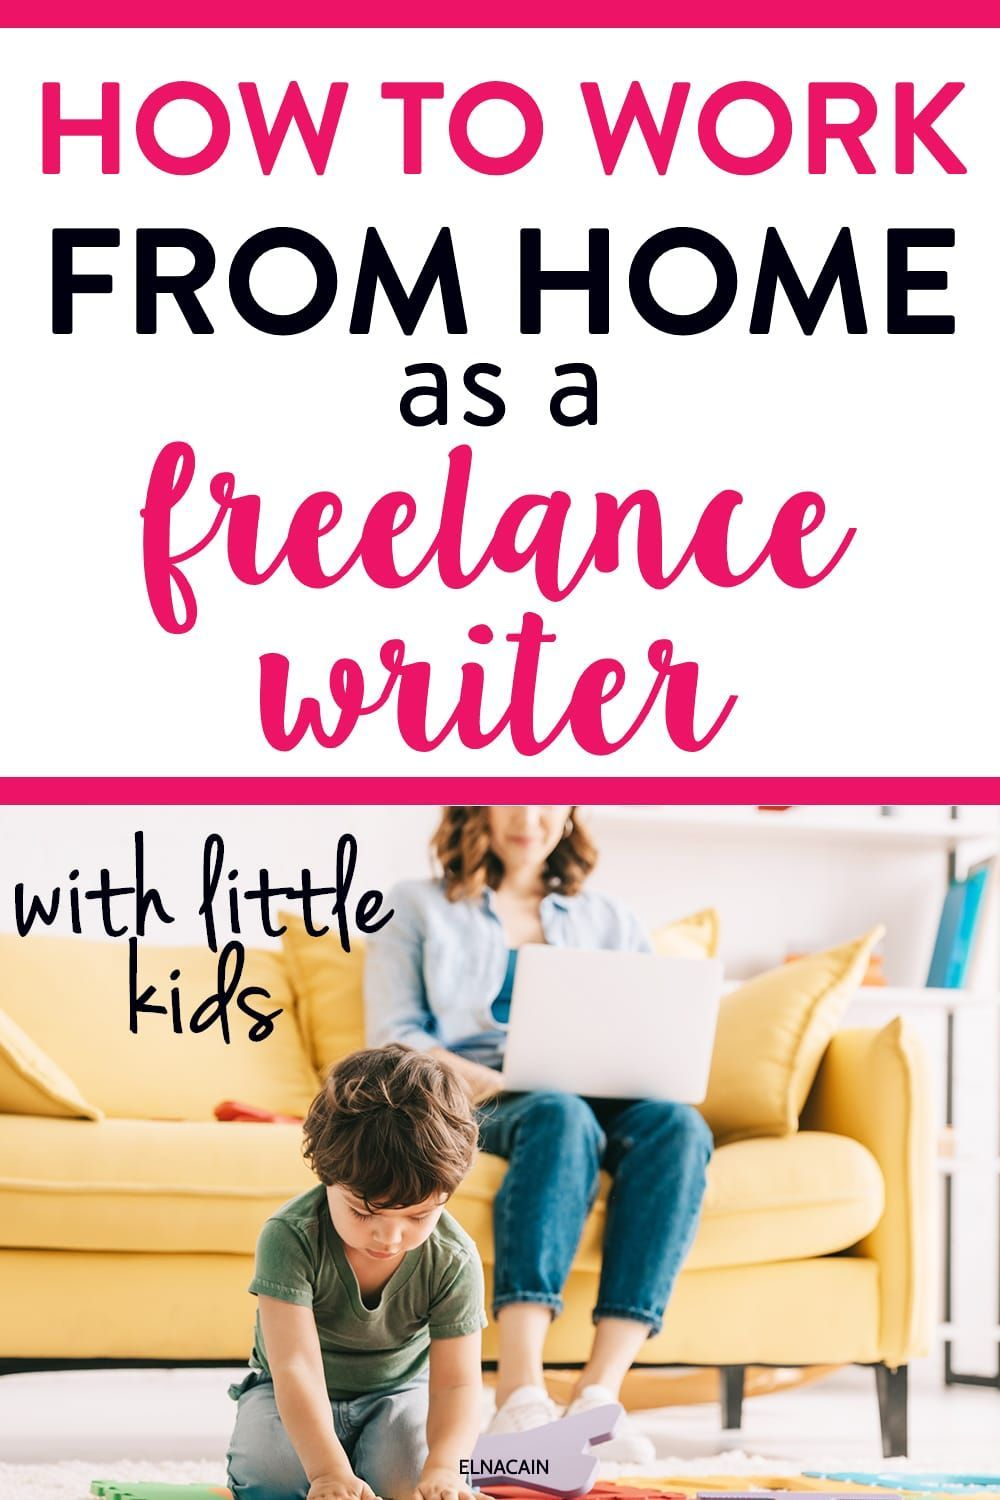 How to Work as a Freelance Writer With Little Kids to Take